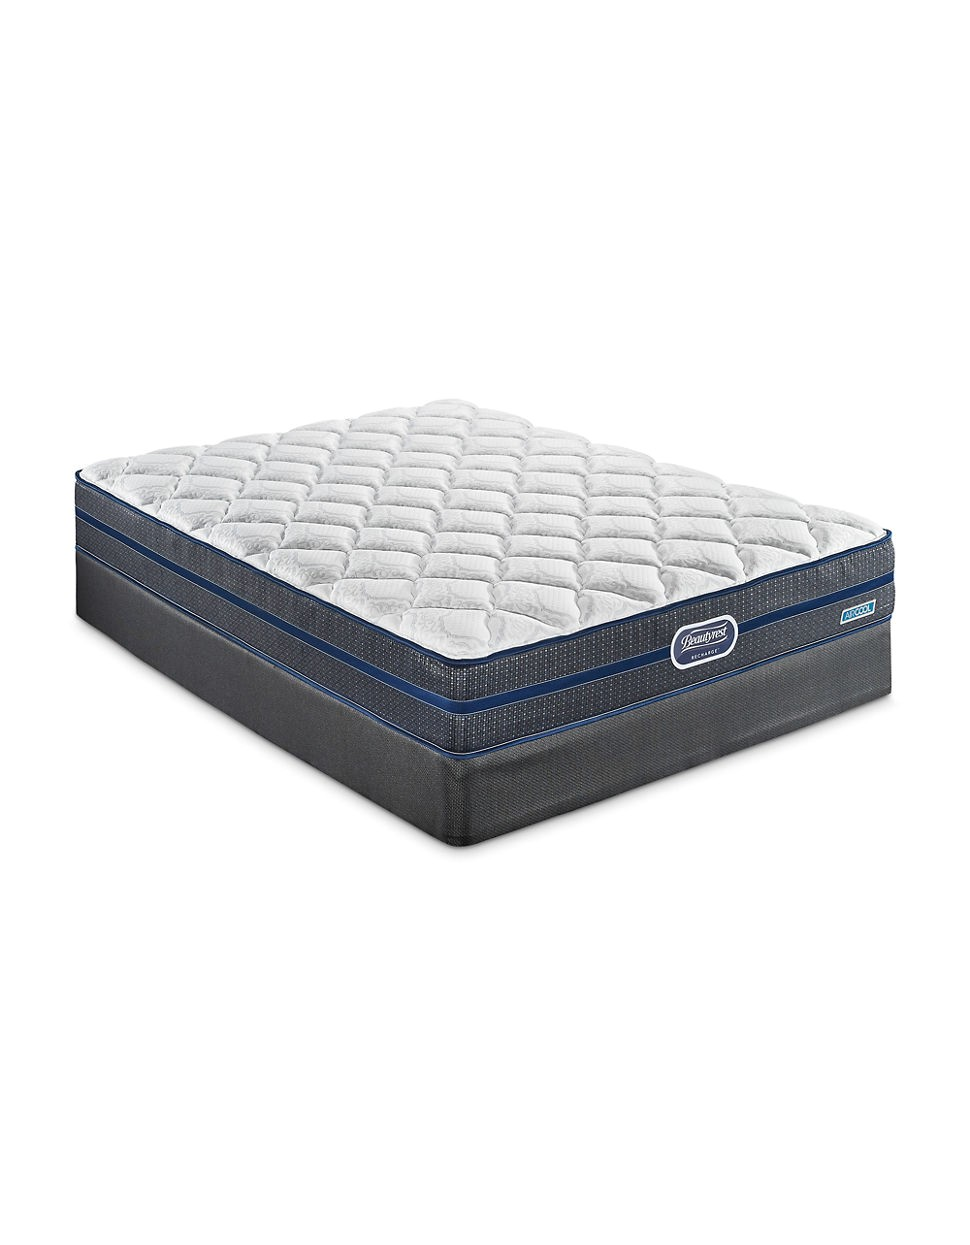 bed mattress and boxspring set